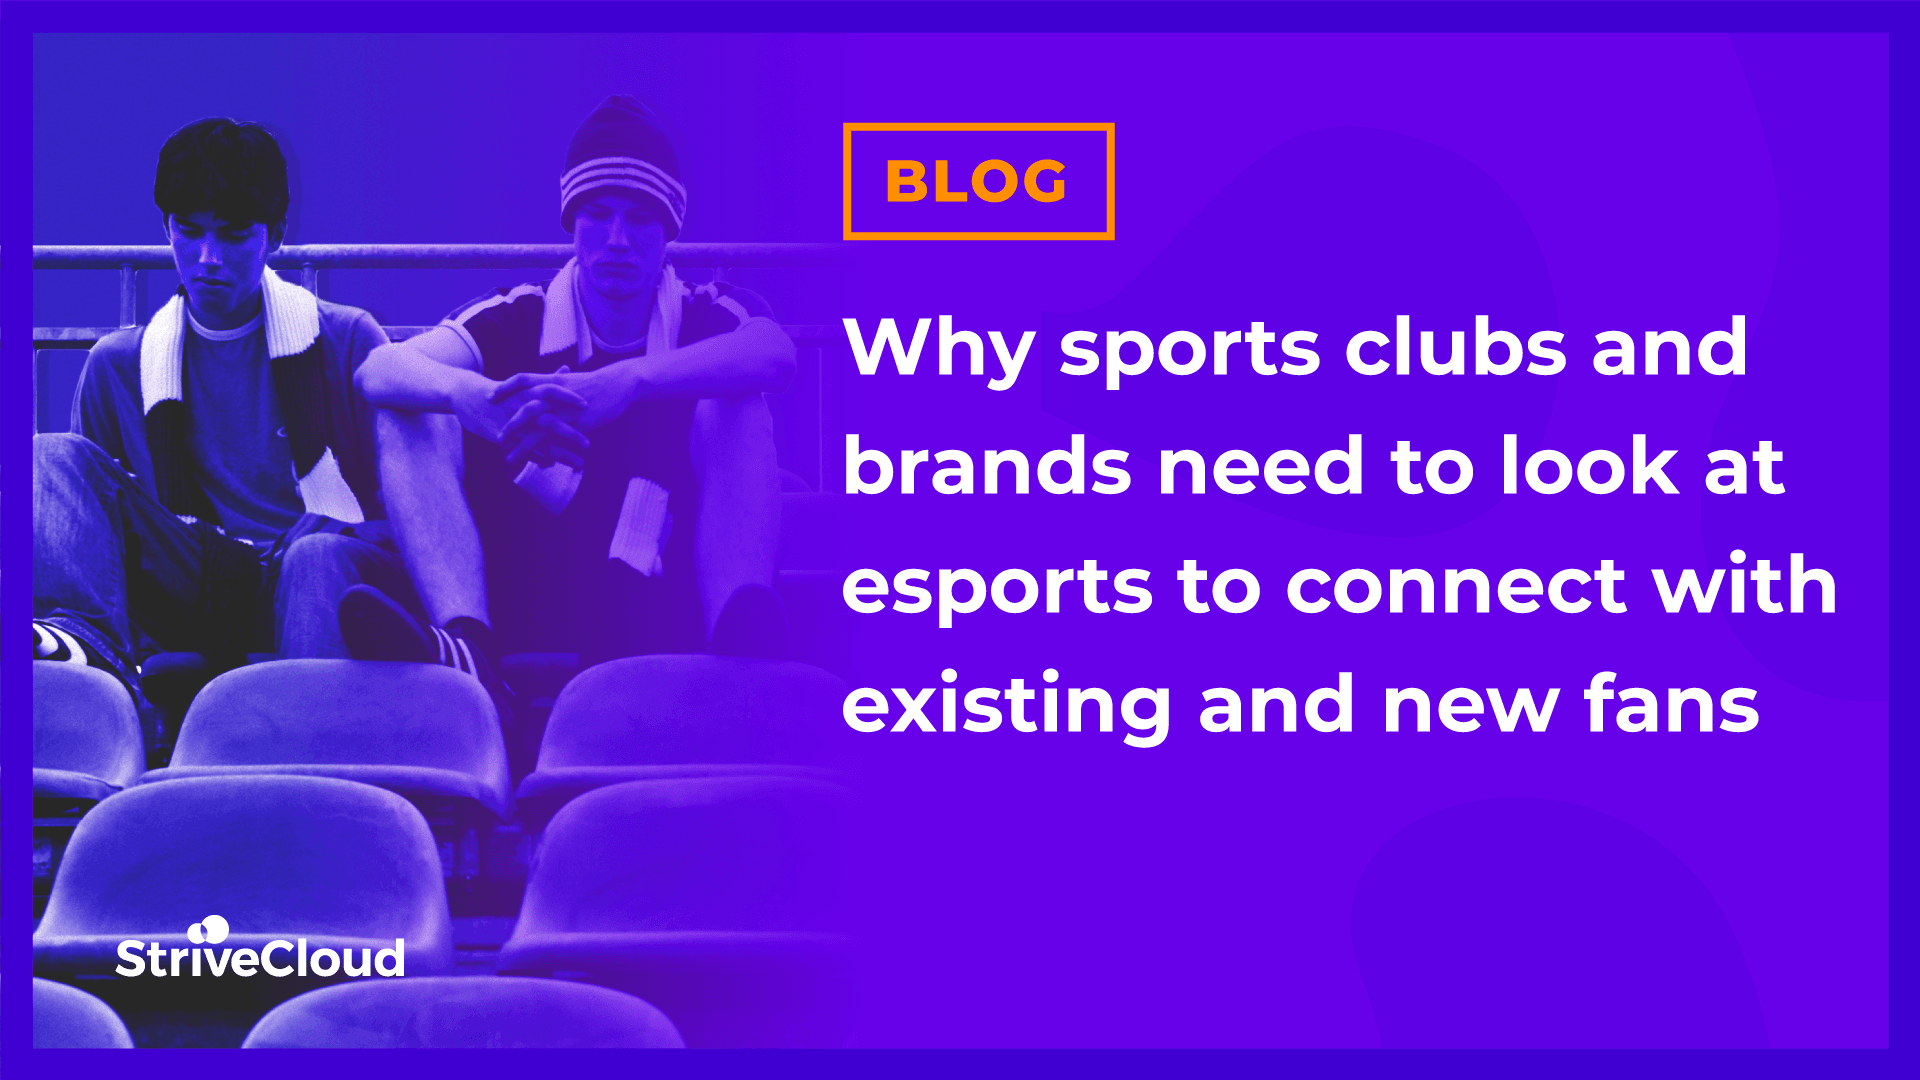 Why sports clubs and brands need to look at esports to connect with existing and new fans